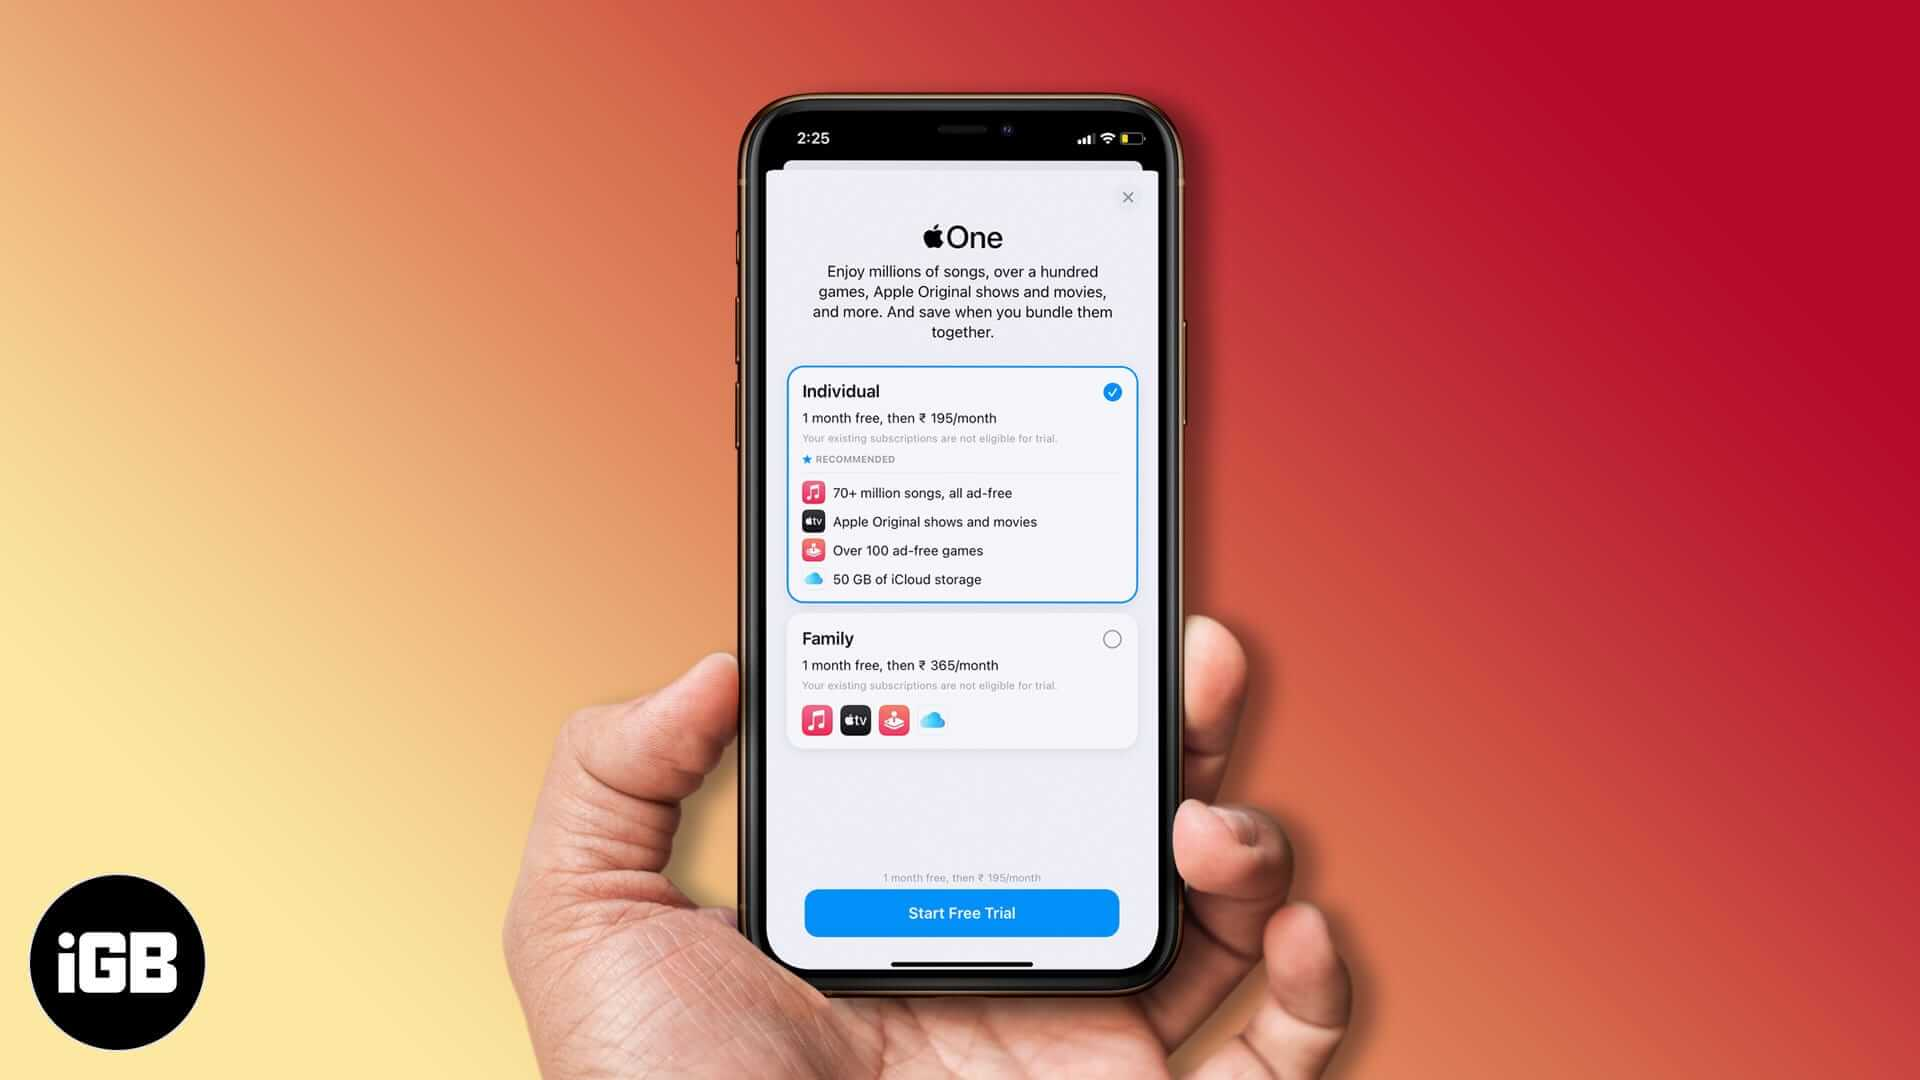 How to Sign Up to Apple One on iPhone and iPad